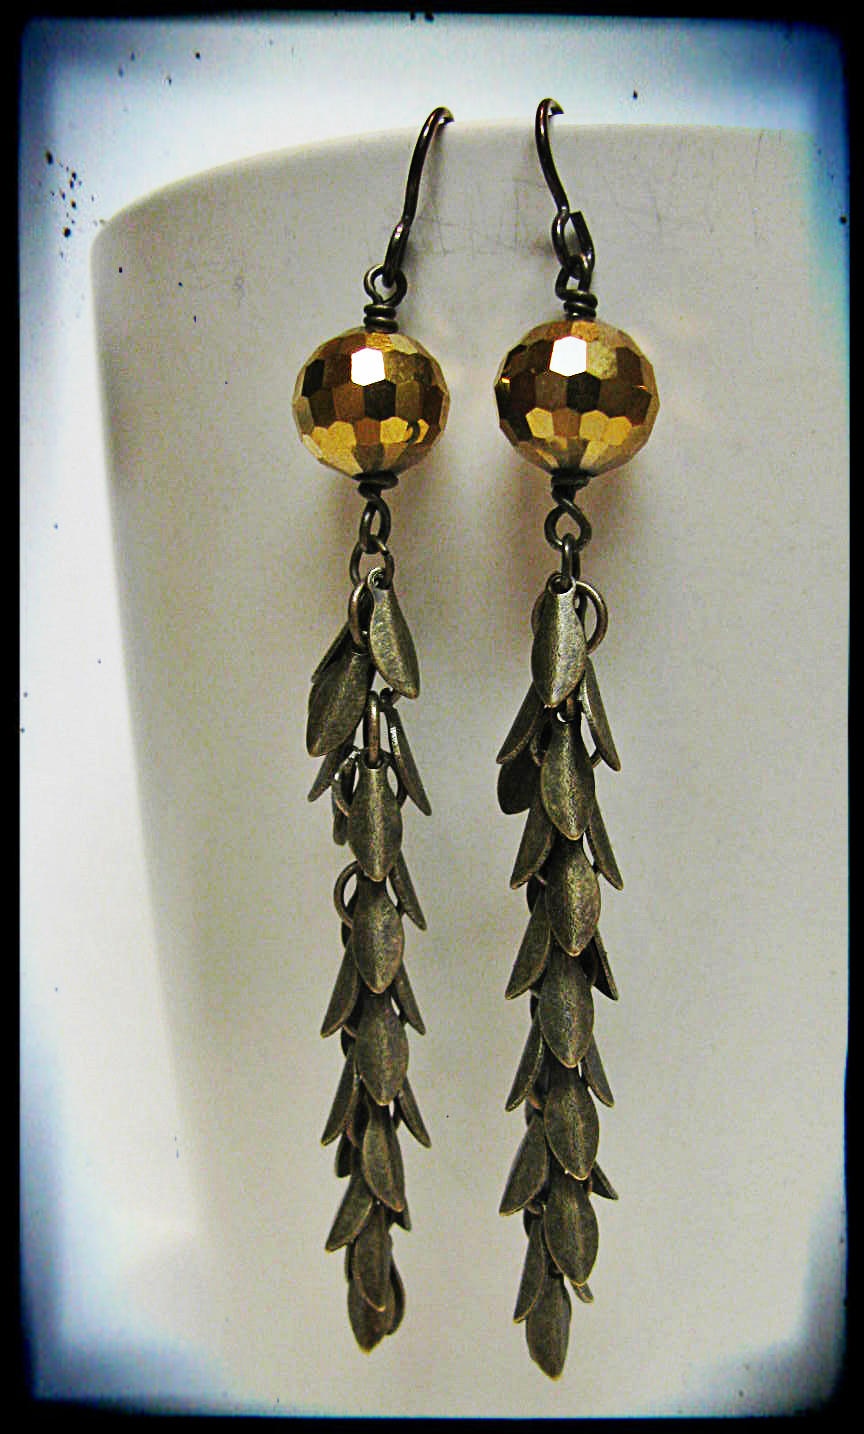 Close-up of Mandi's earrings featuring gold sparkly glass and brass leaf charm chain.